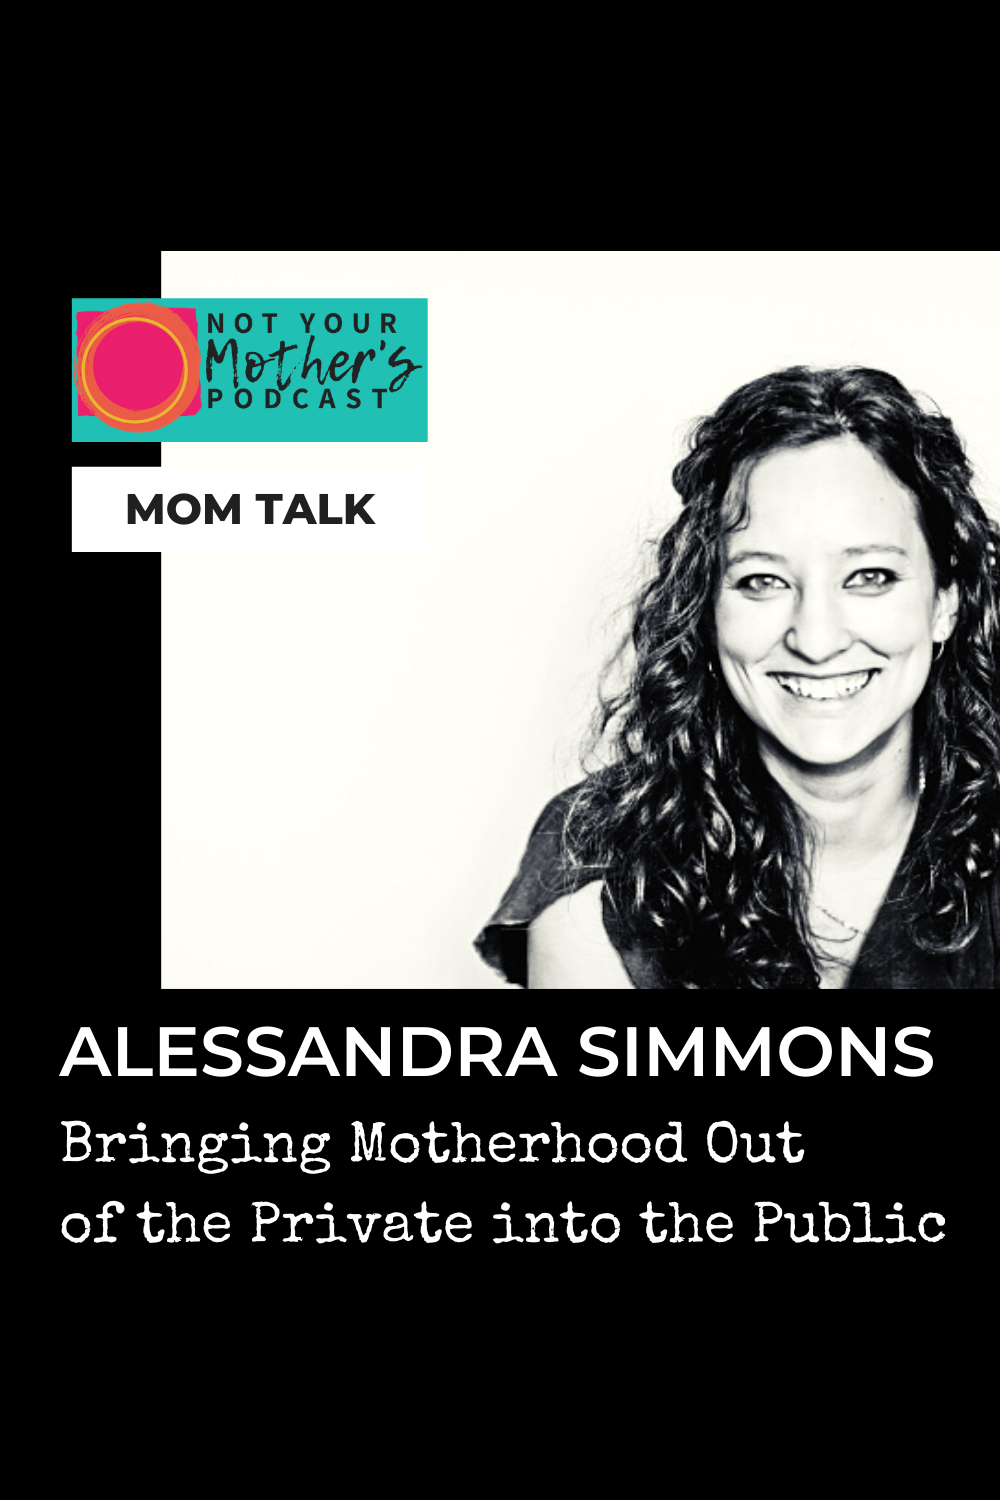 Bringing Motherhood Out of the Private into the Public with Alessandra Simmons PIN